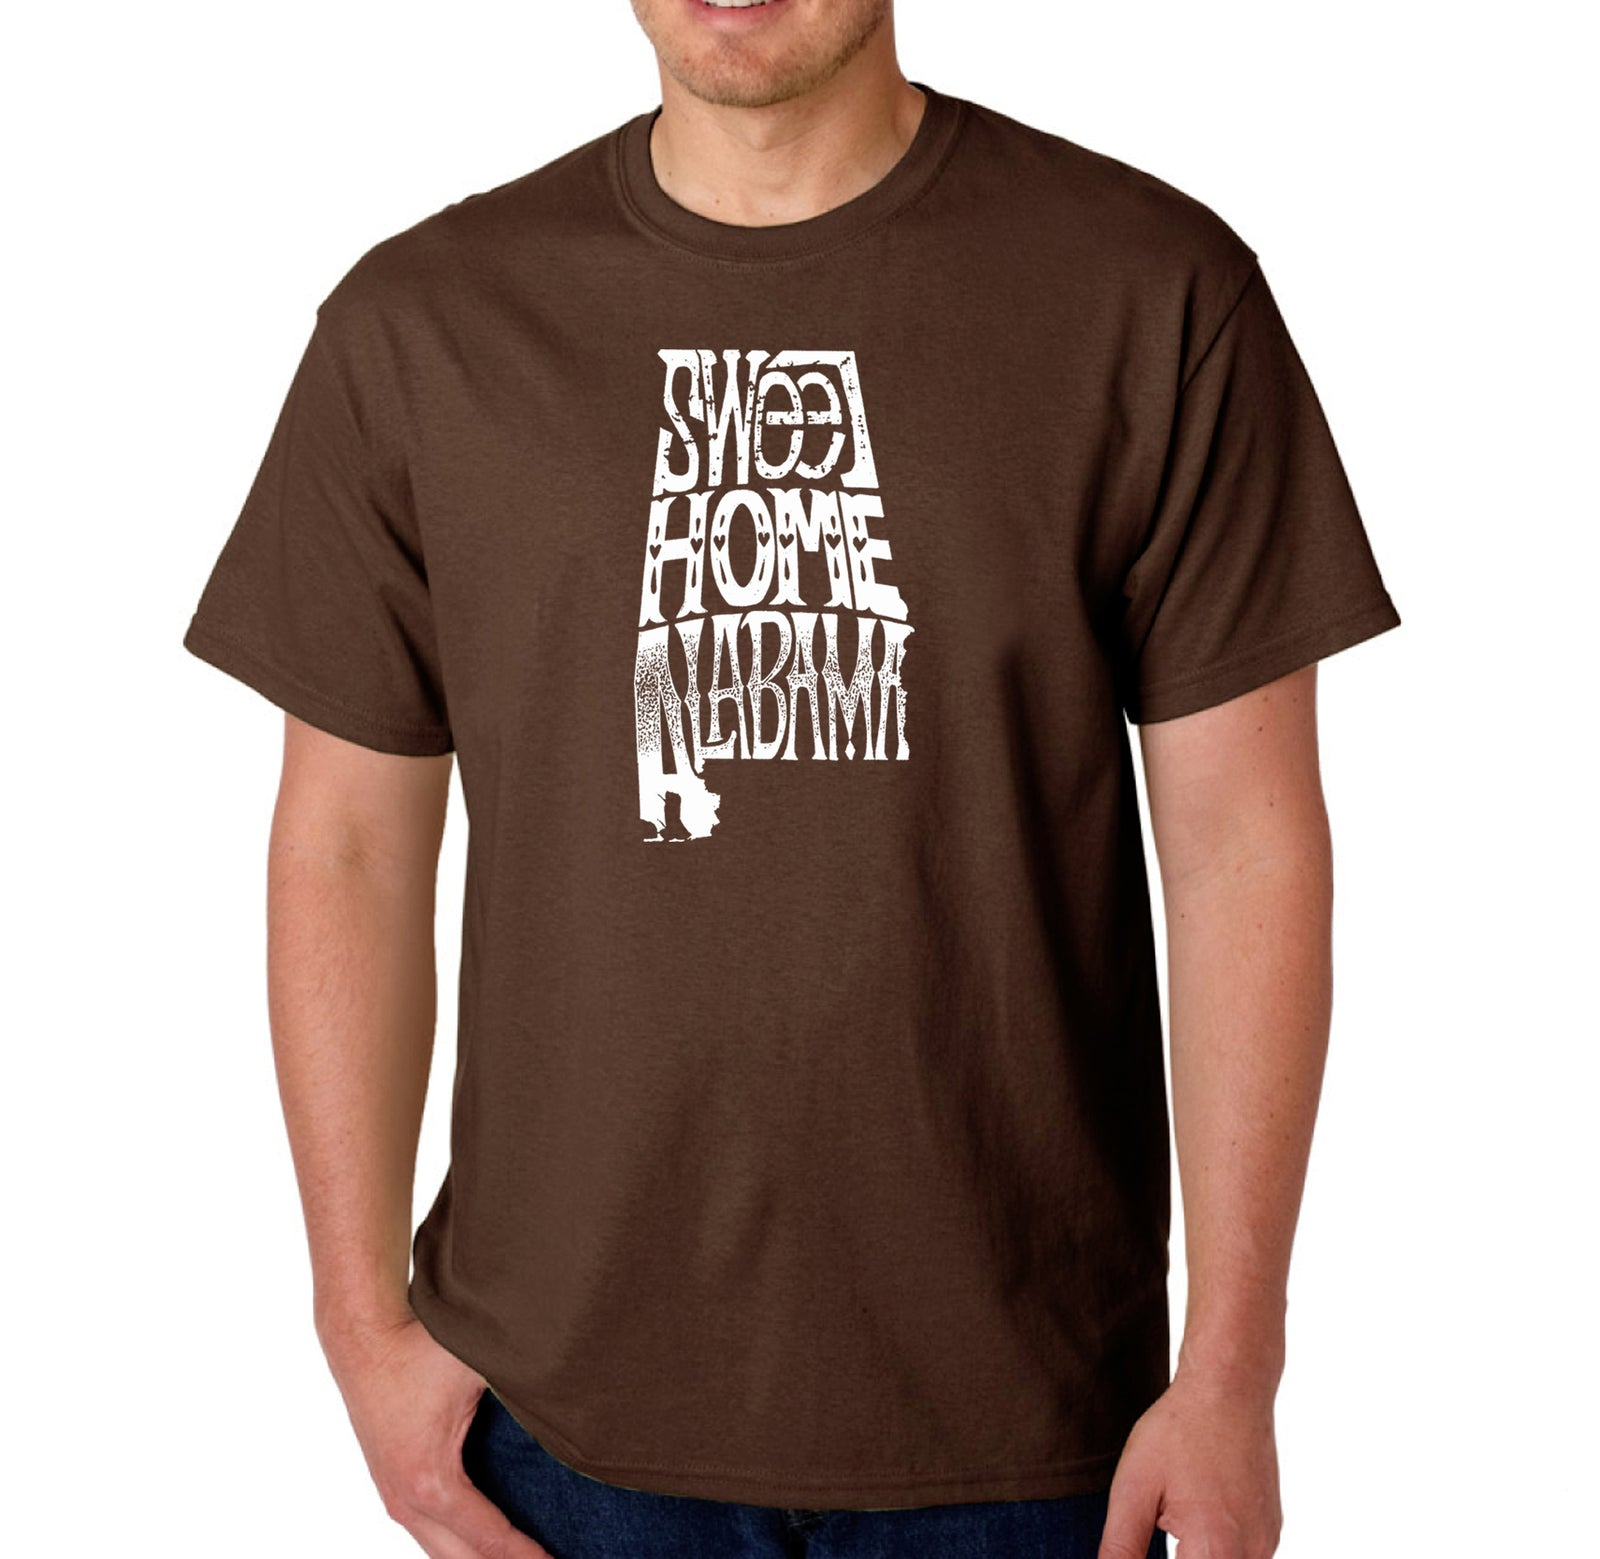 LA Pop Art Men's Word Art T-shirt - Sweet Home Alabama